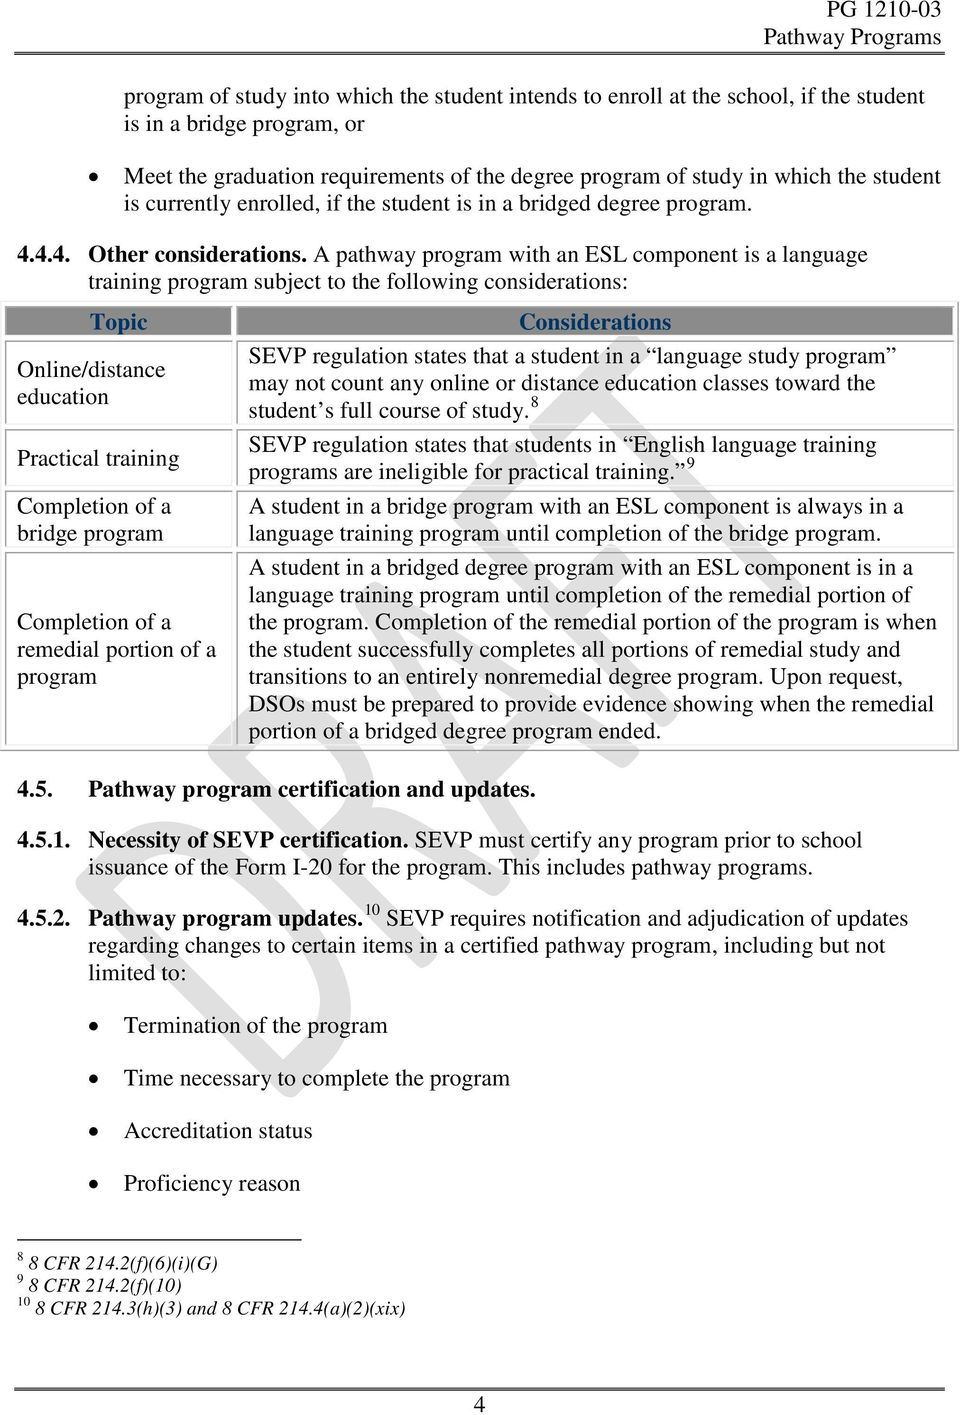 A pathway program with an ESL component is a language training program subject to the following considerations: Topic Online/distance education Practical training Completion of a bridge program